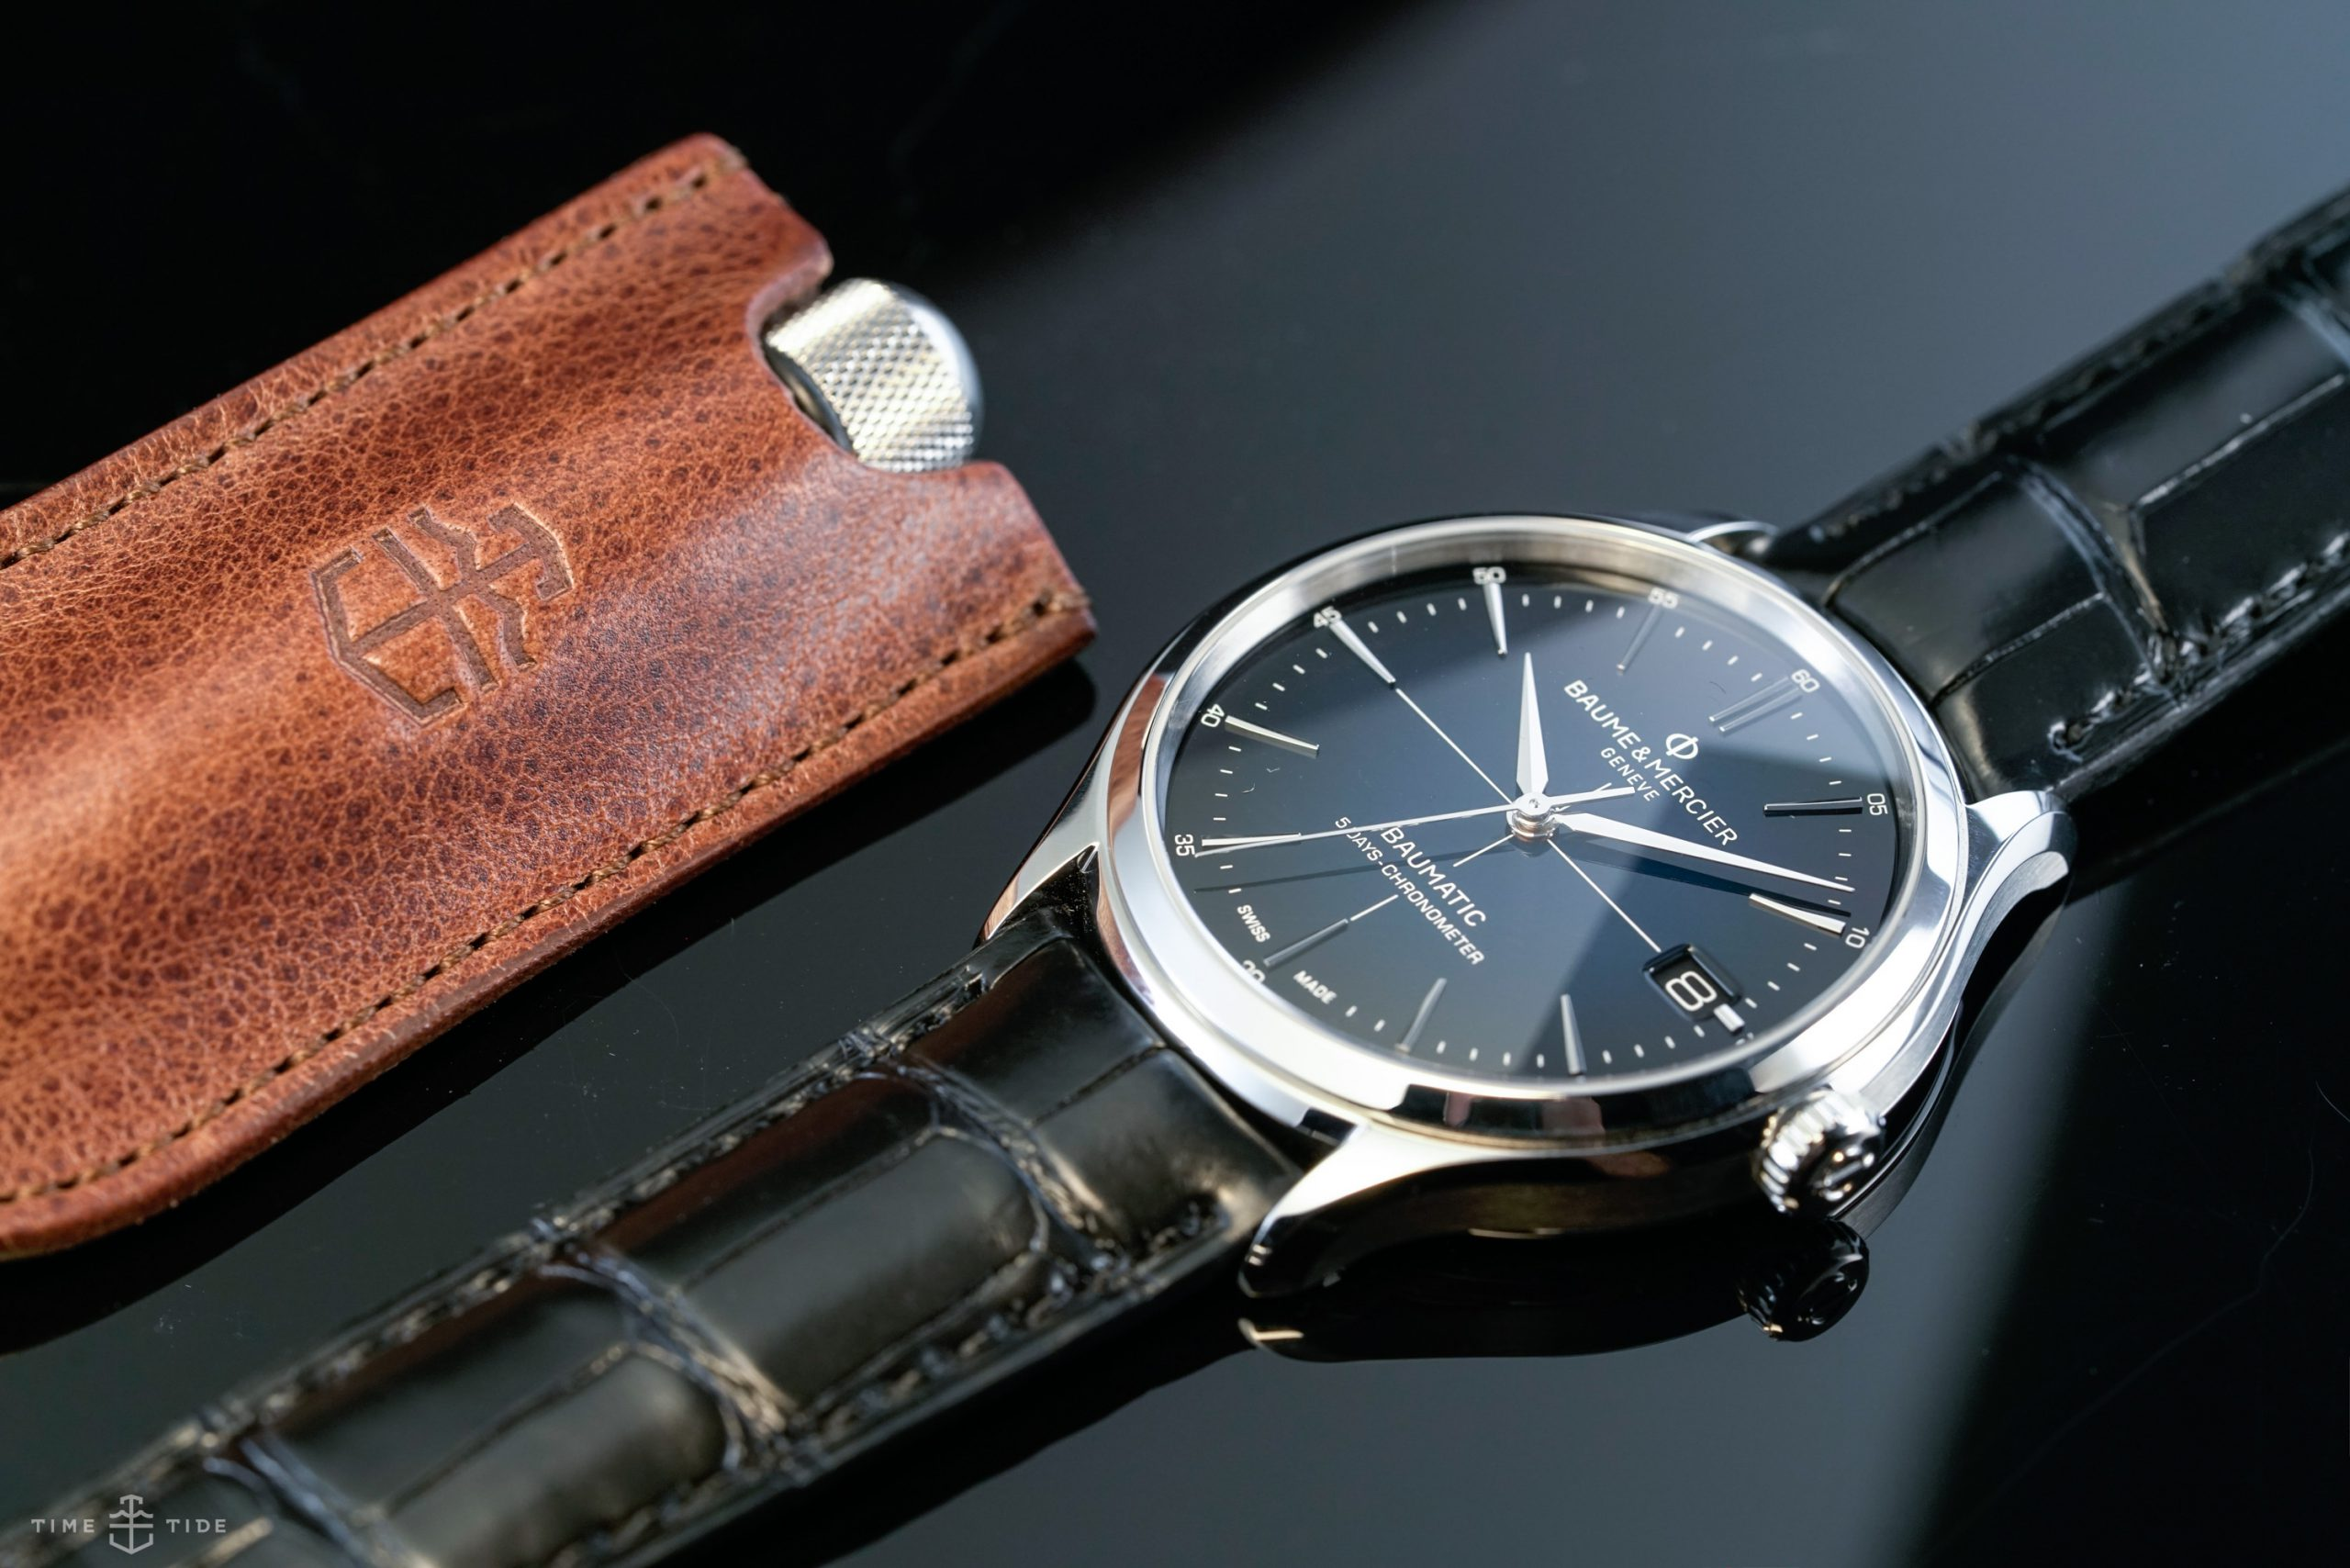 LIST: Andrew's top 3 picks under $10k from SIHH 2019